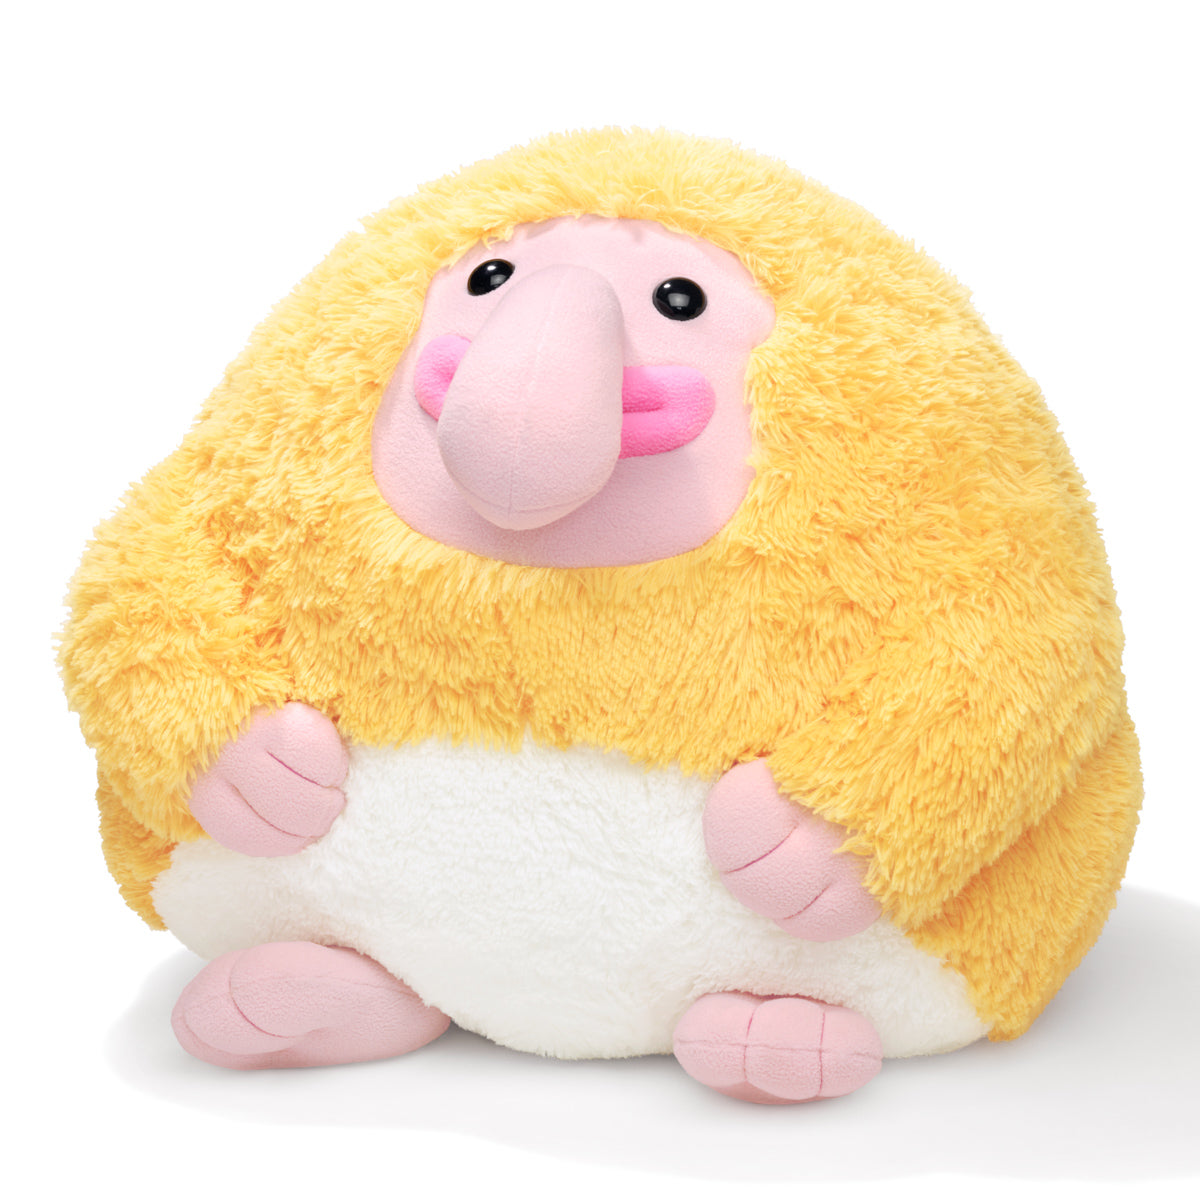 Colossal Proboscis Monkey plush